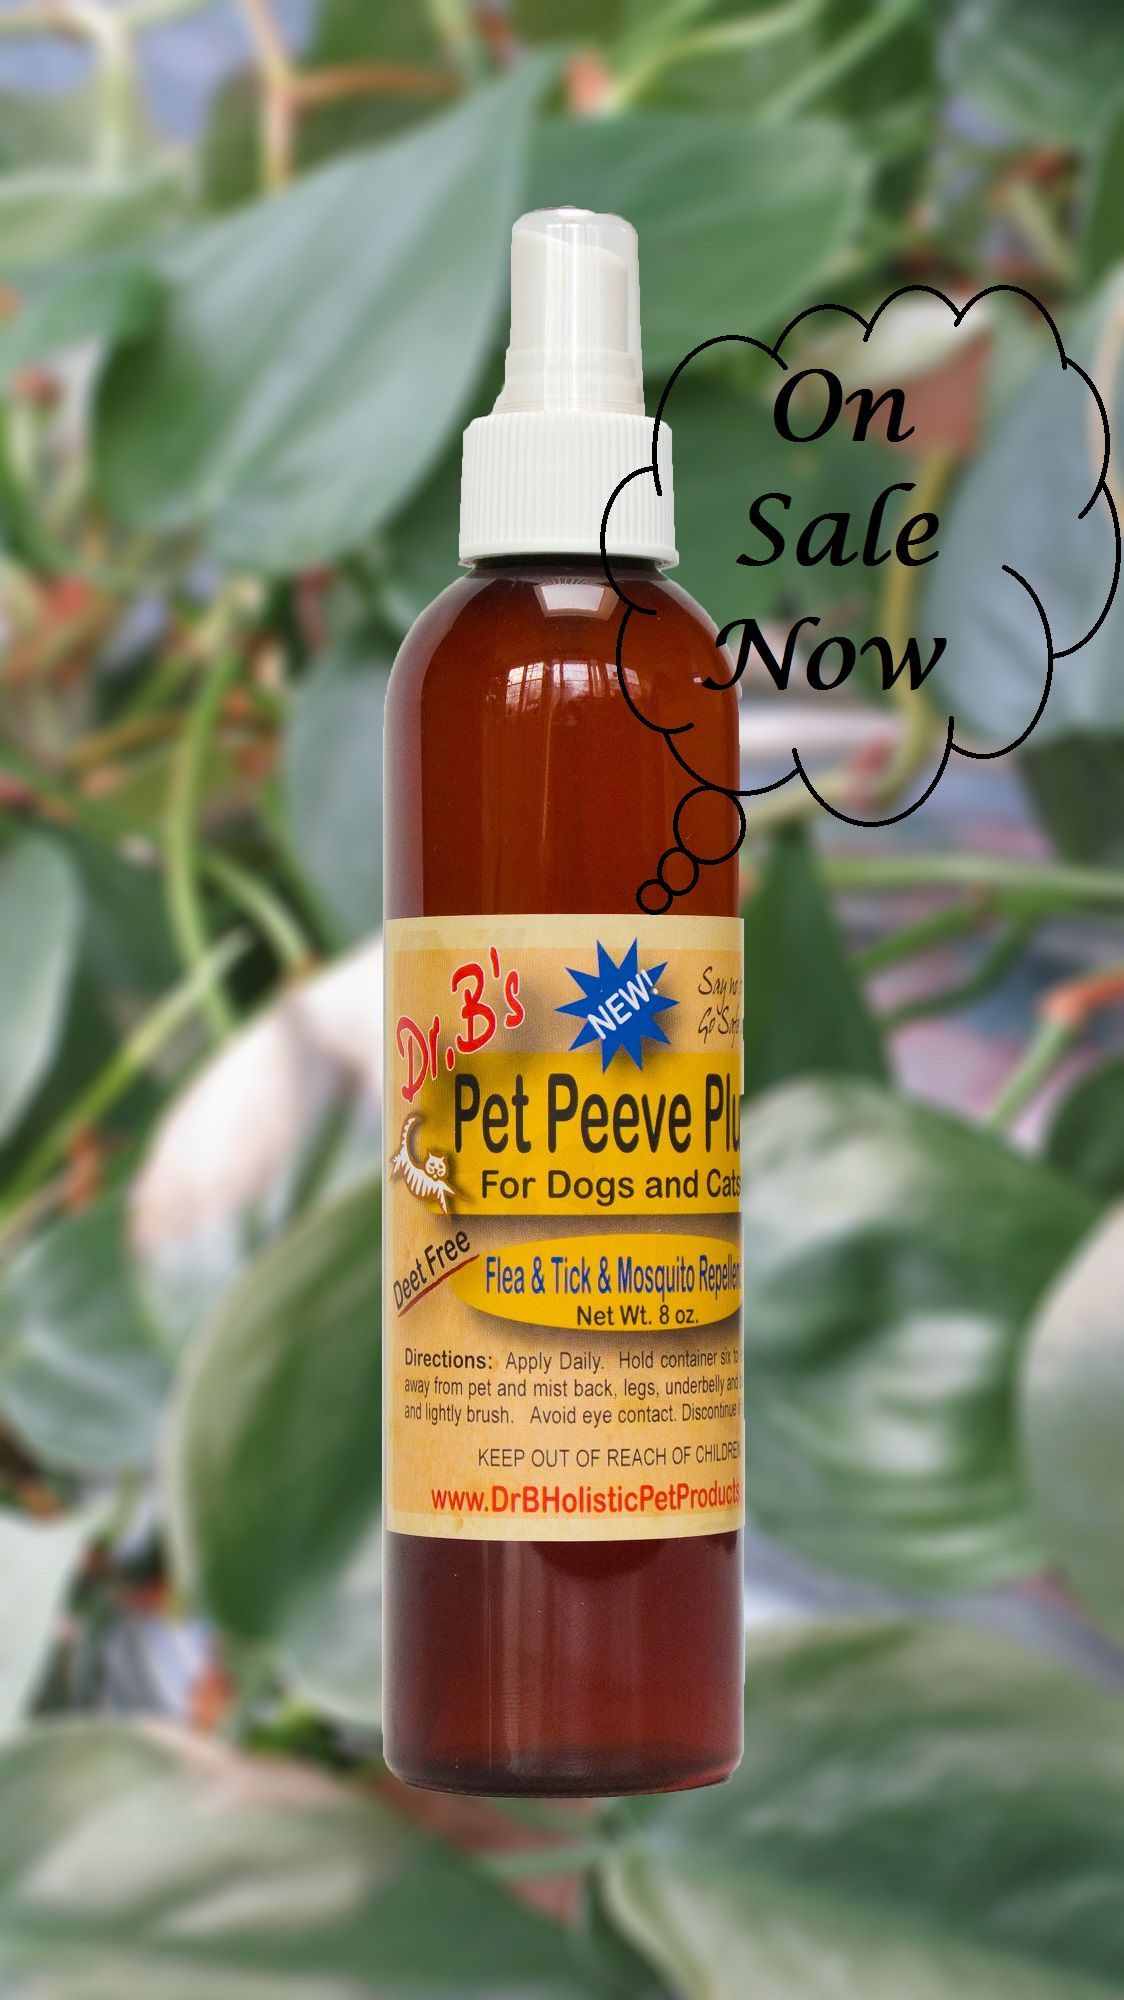 Pet Peeve Plus Insect Repellent has a unique formula using a plant-based ingredient that contains the insect repellent found naturally in plants. It also contains a combination of six other essential oils that further repels mosquitoes, black flies, gnats, ticks, chiggers, and no-see-ums. Pet Peeve Plus is safe for any pet and provides this effective, dependable protection with a light, clean, fresh fragrance.